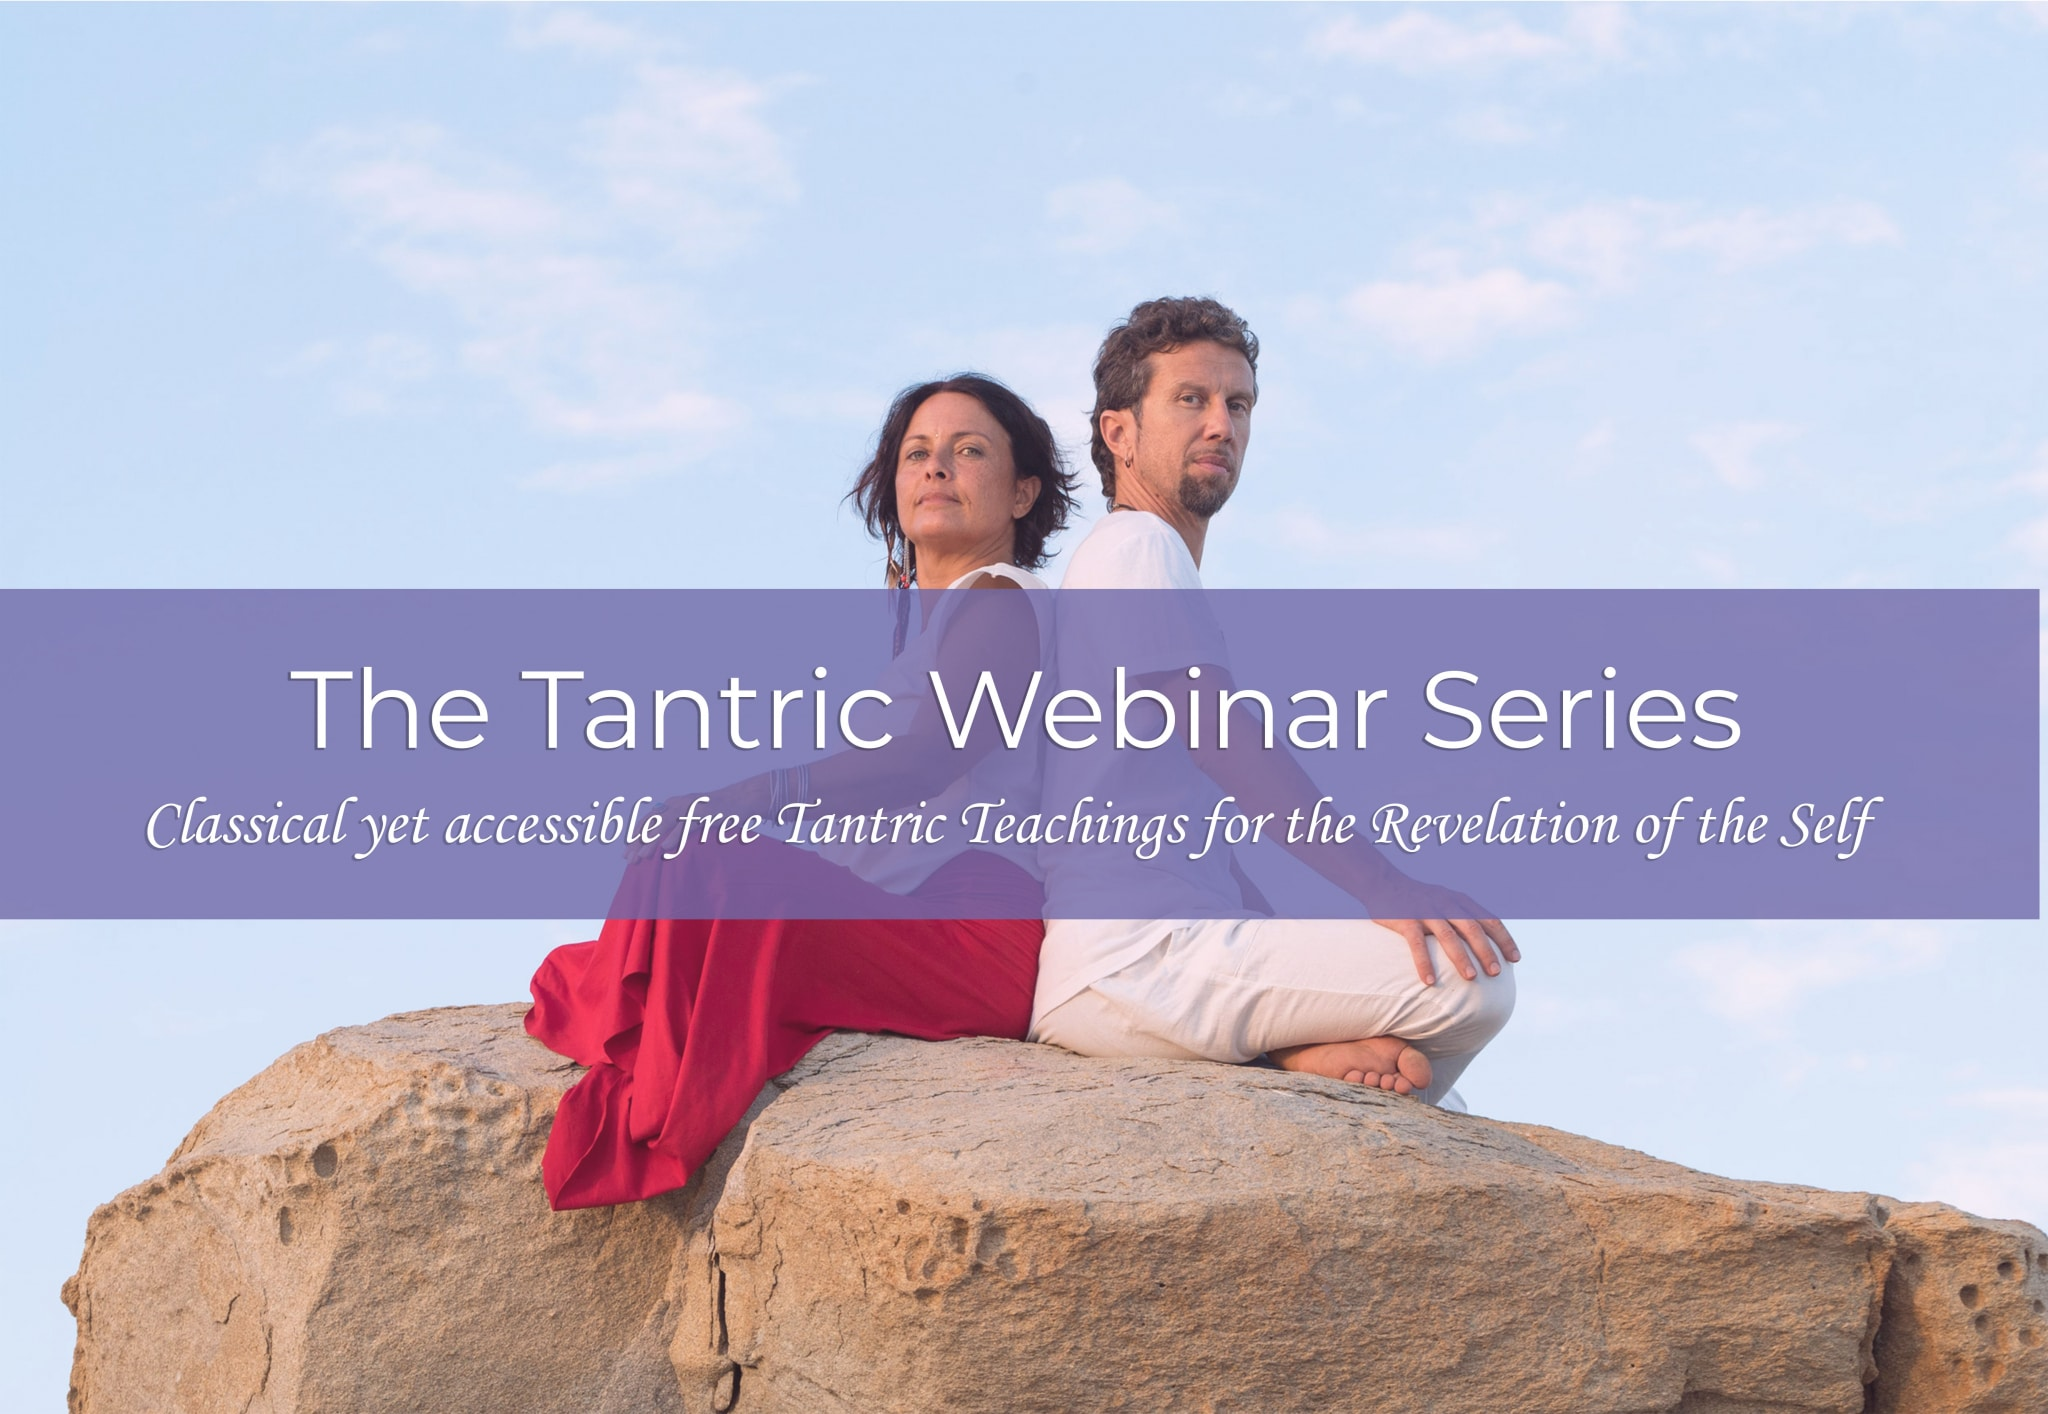 The tantric webinar series Amita and Marco tantra teachers sitting yoga position